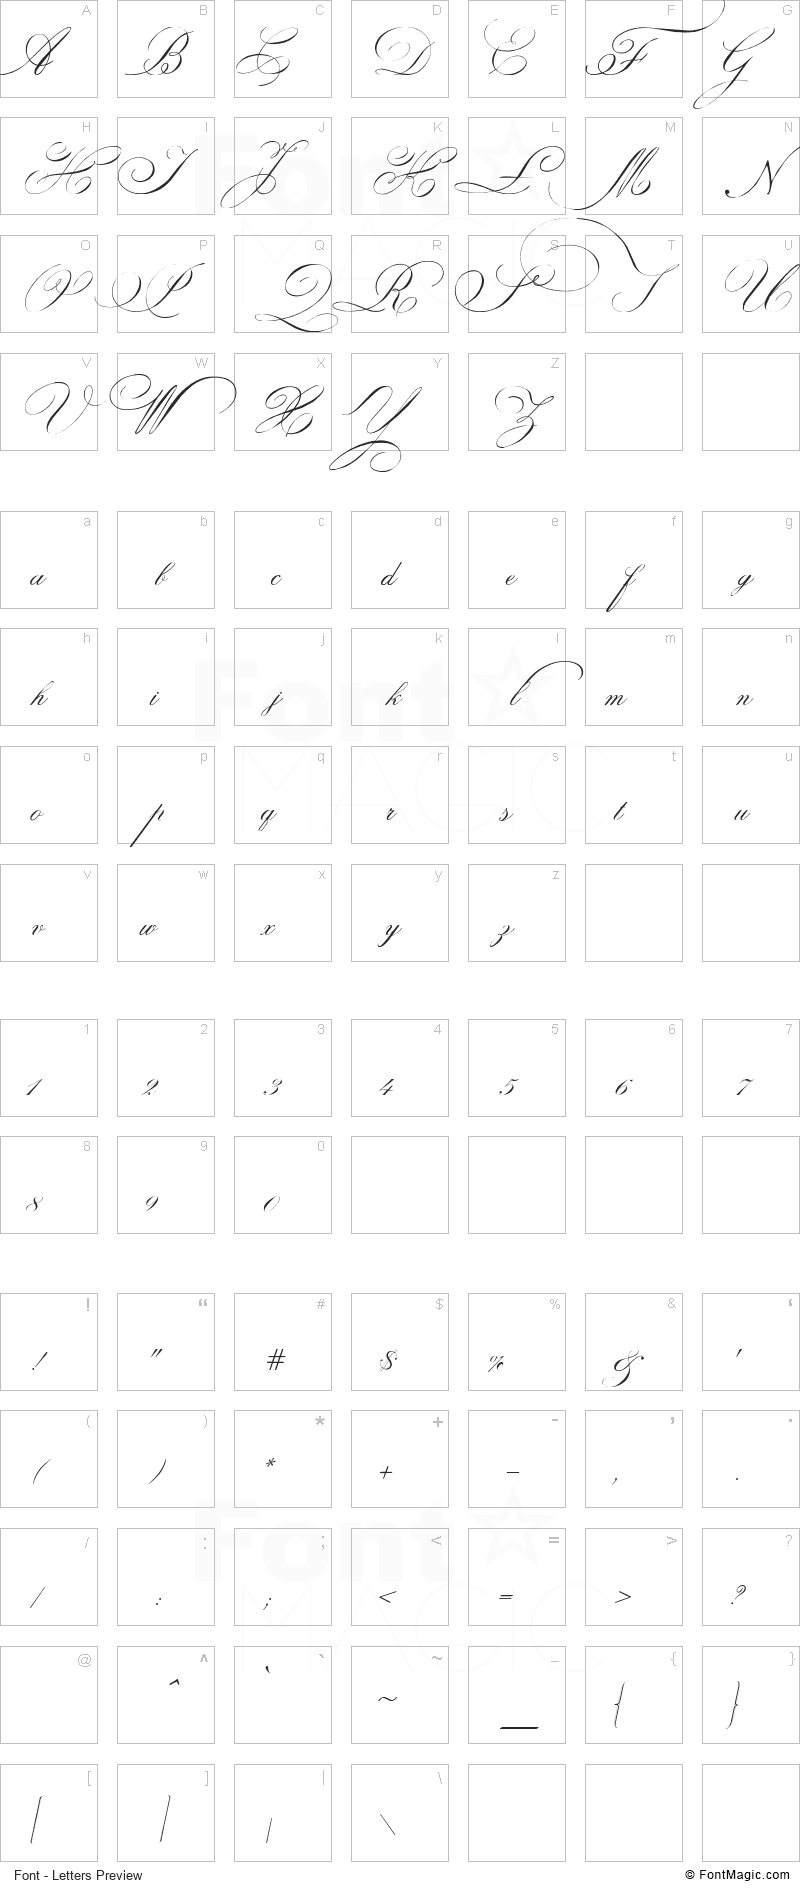 Indenture English Penman Font - All Latters Preview Chart